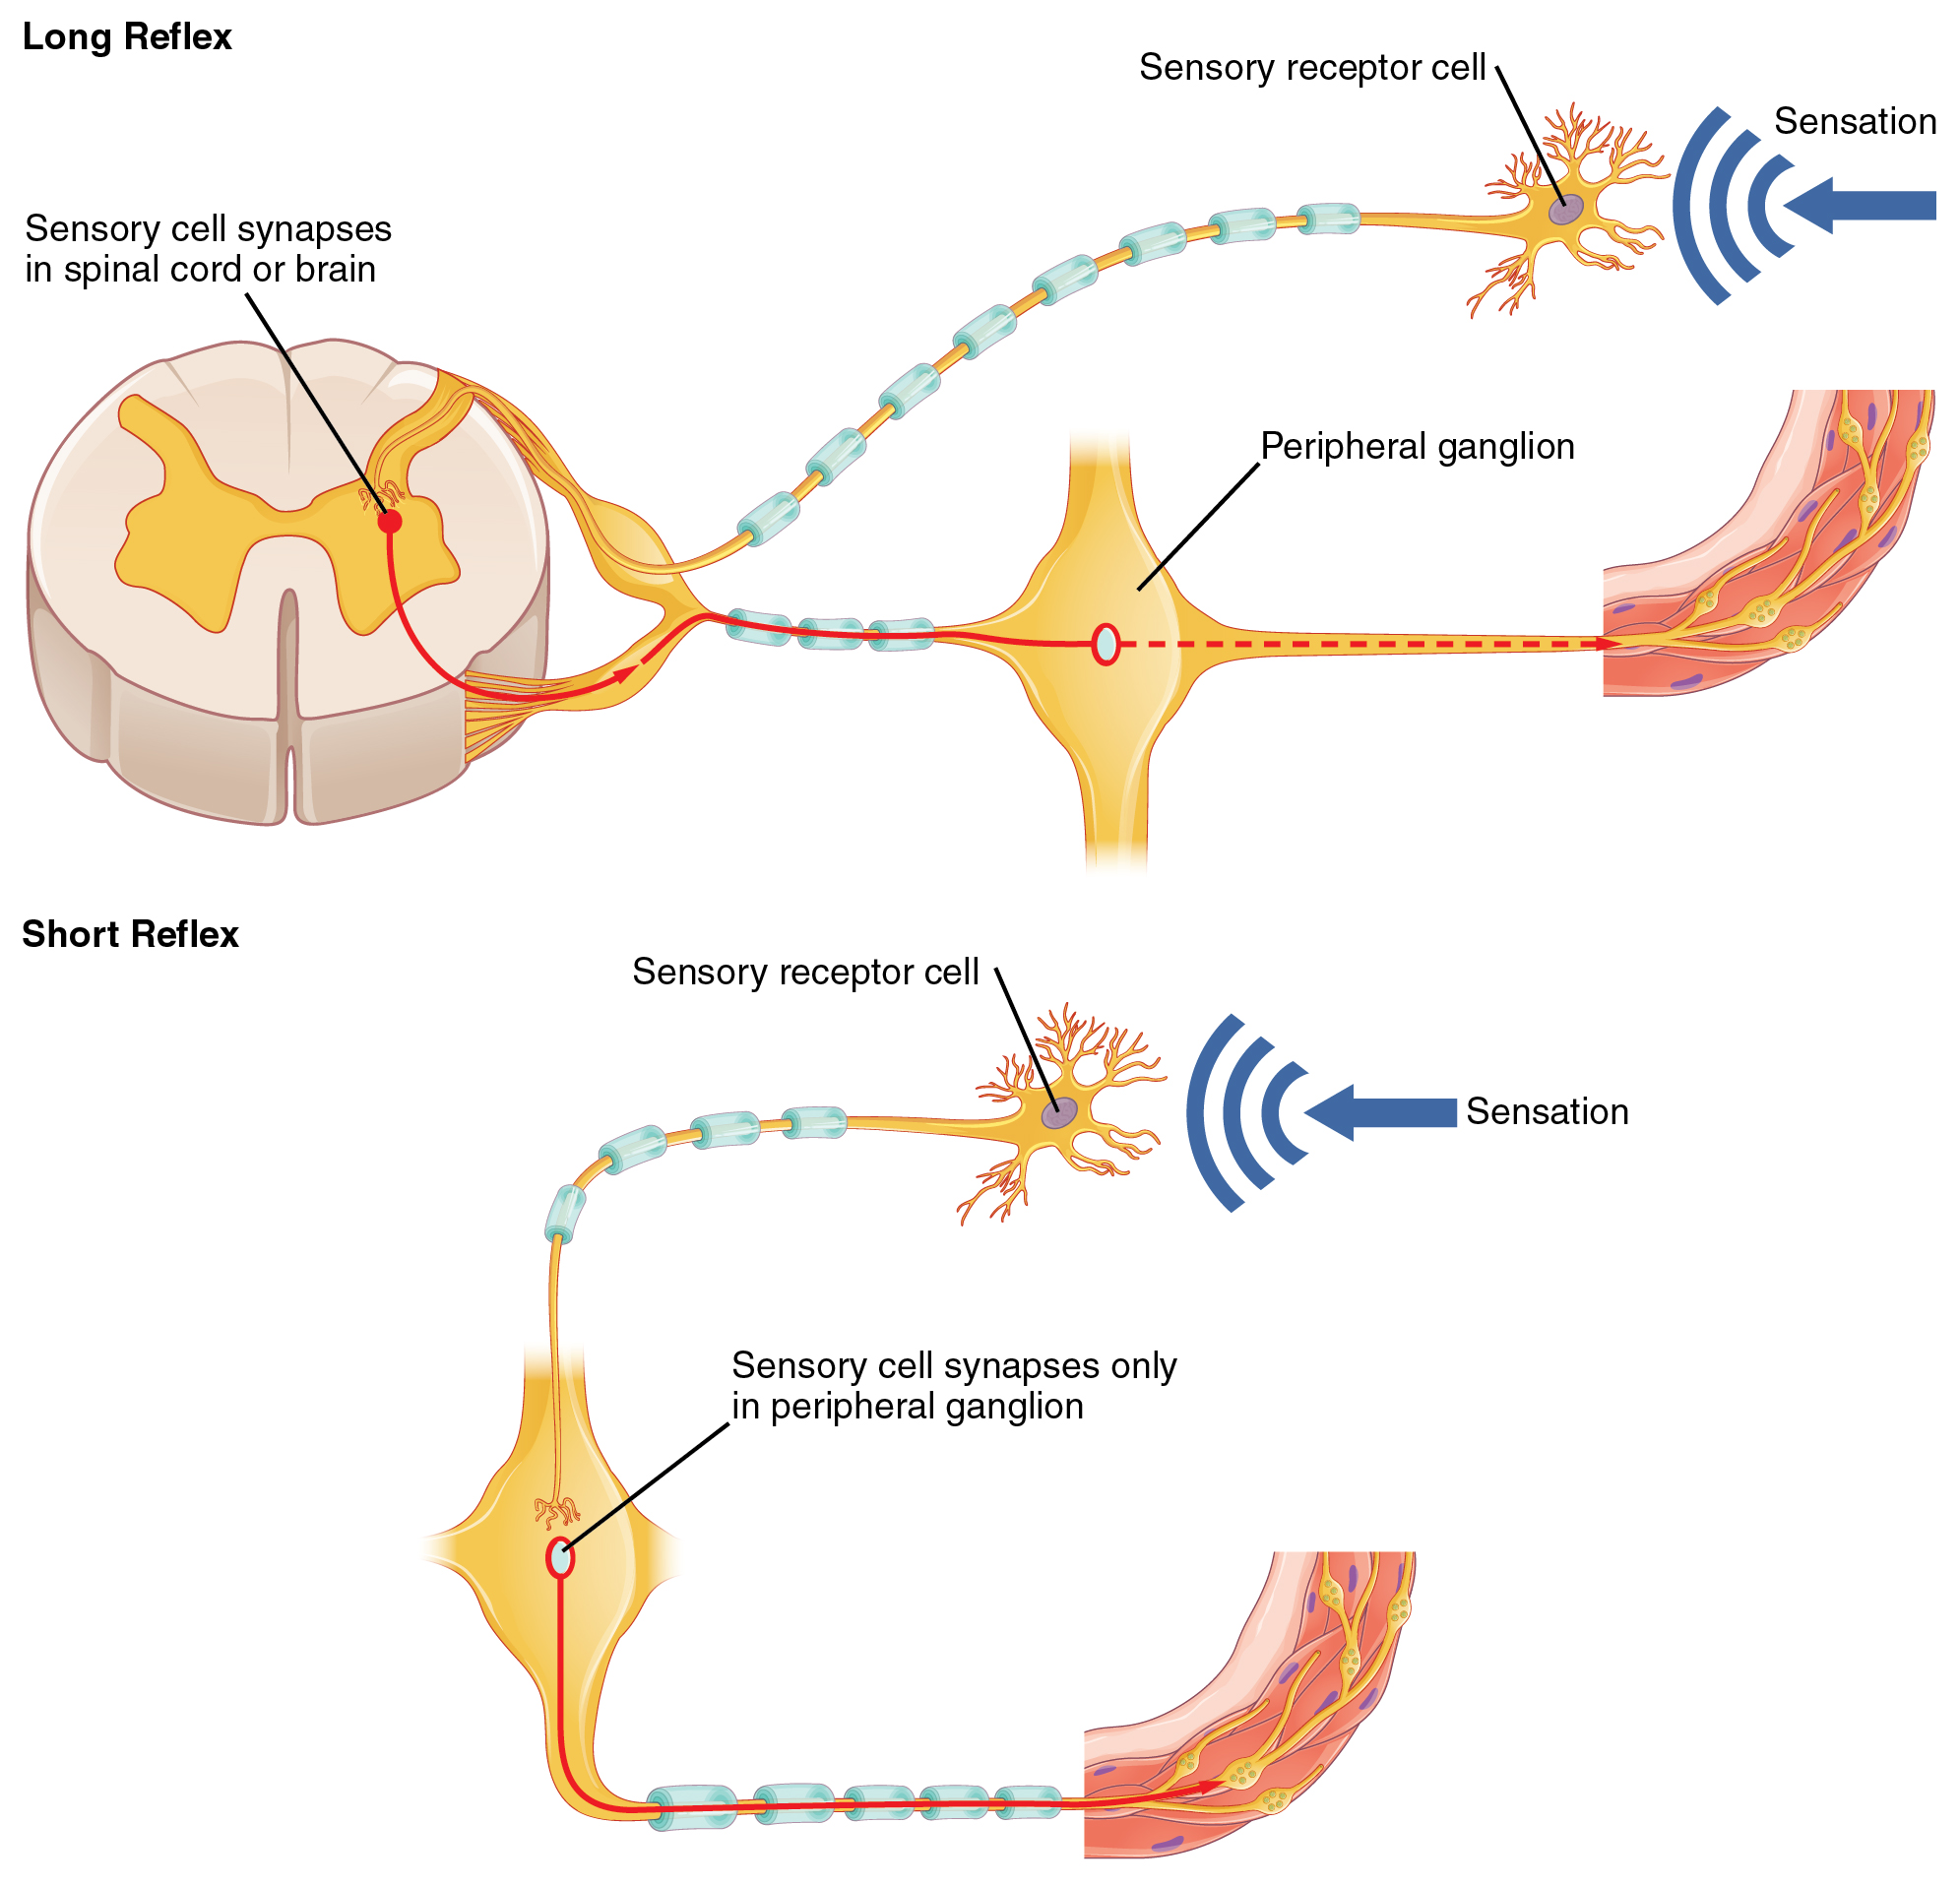 The top panel in this figure shows a long reflex, where the spinal cord is connected to the sensory receptor cell and the peripheral ganglion. The bottom panel shows a short reflex, where the sensory receptor cell is directly connected to the peripheral ganglion.